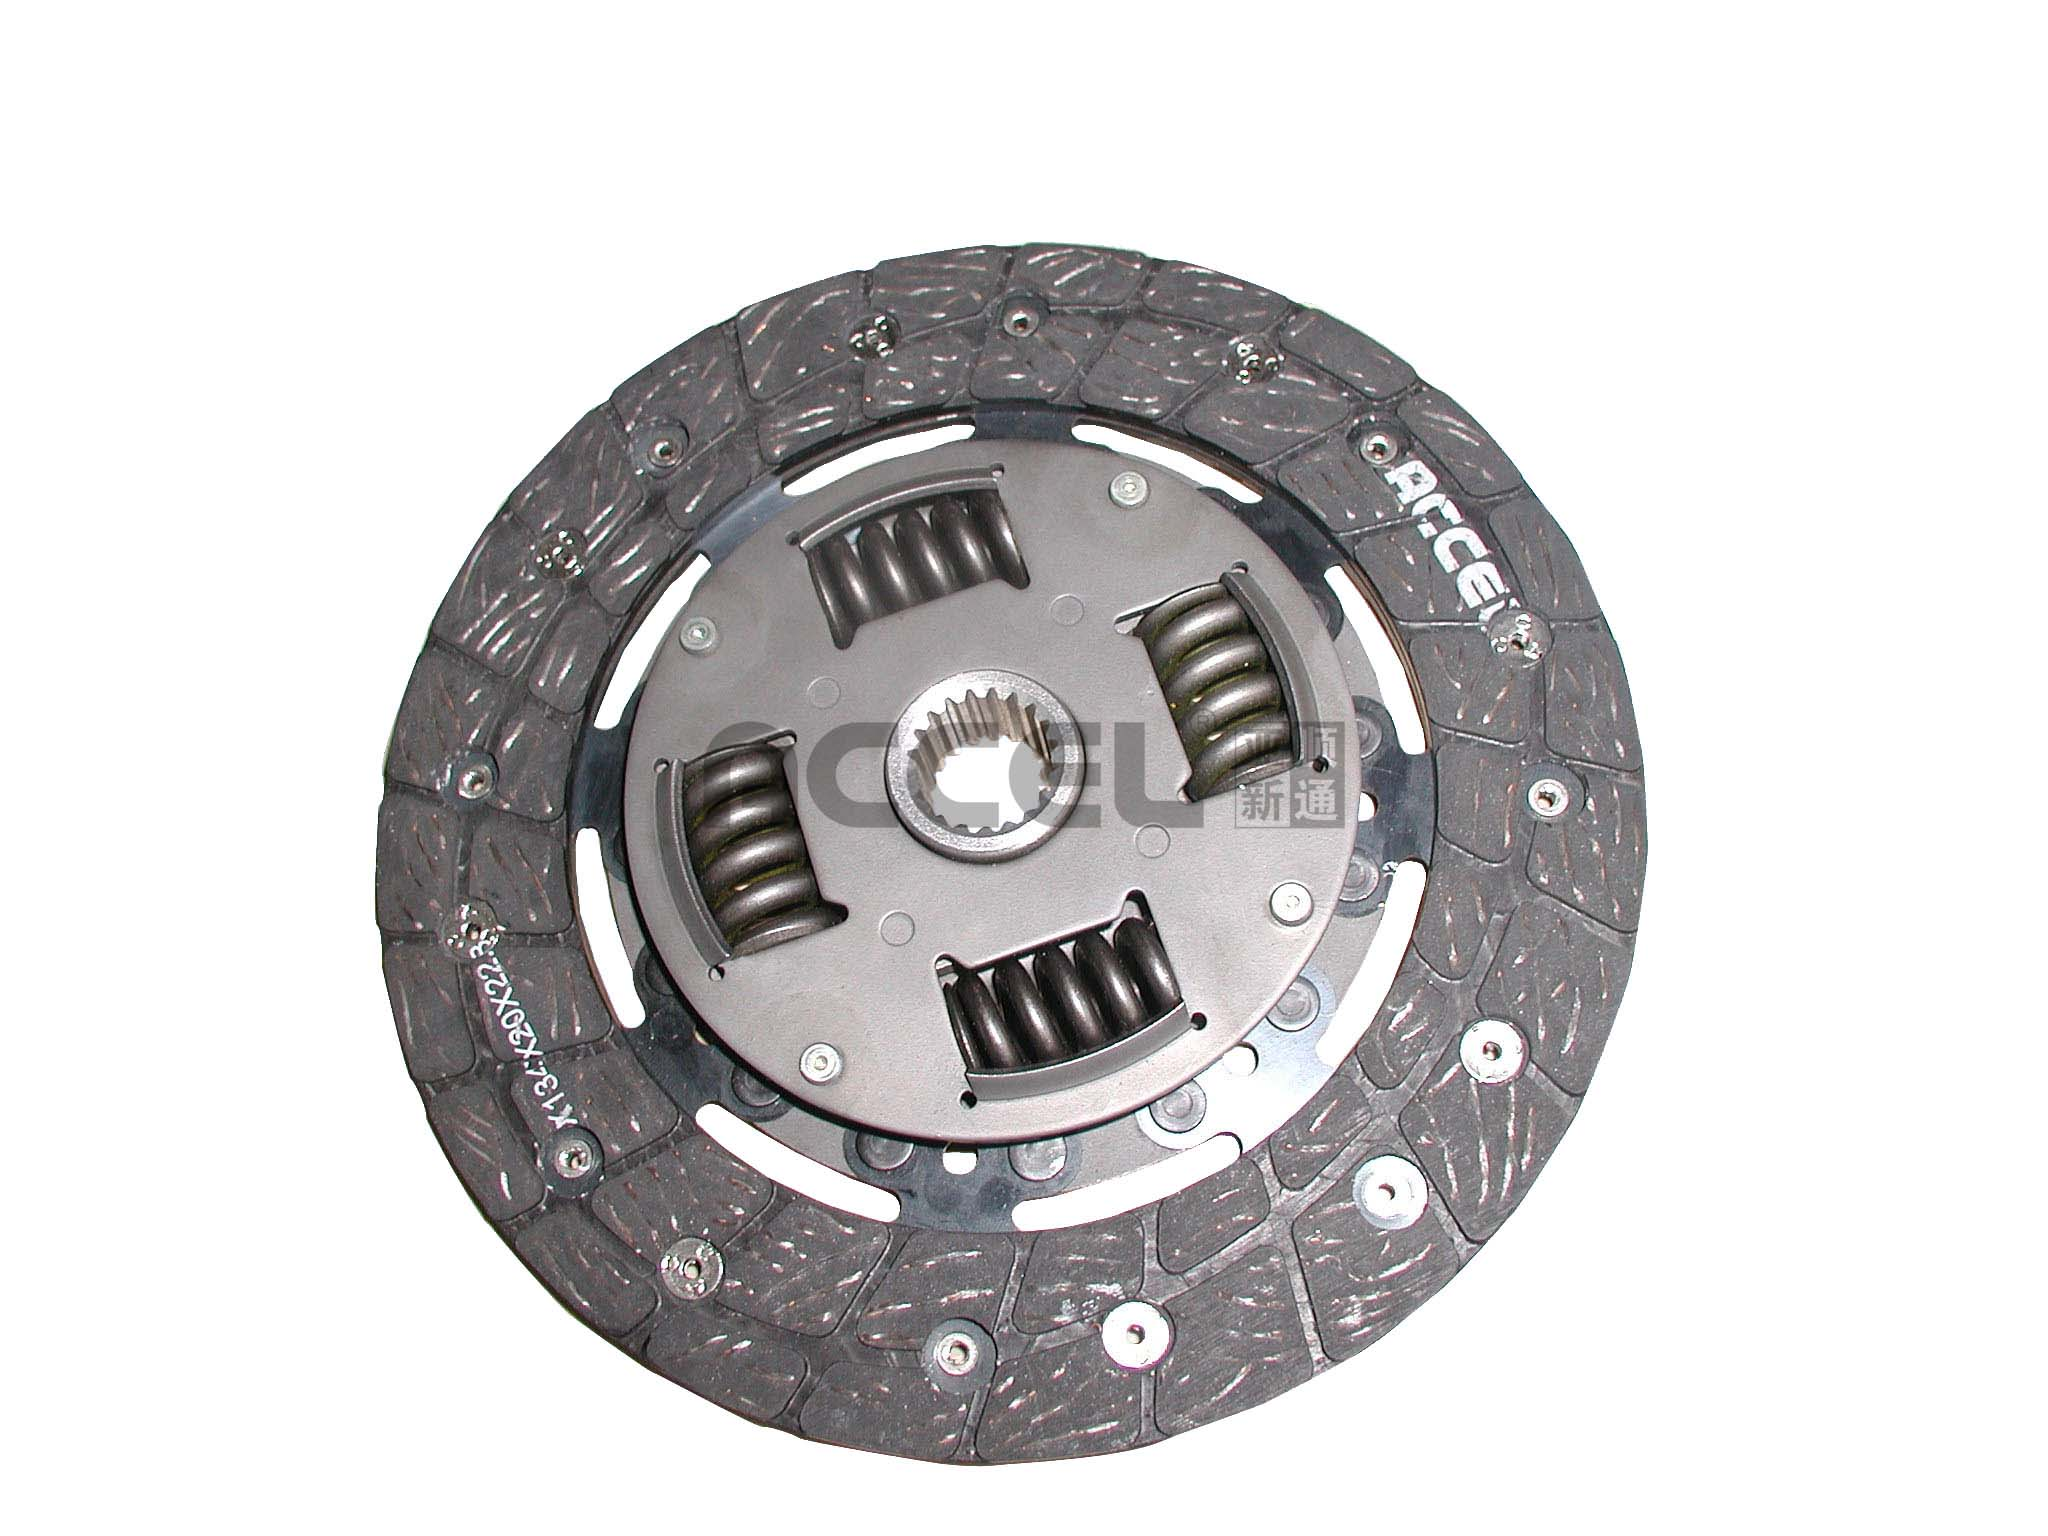 Clutch Disc/OE:NULL/200*135*20*22.8/ARS-003/RUSSIA Car/CL1017